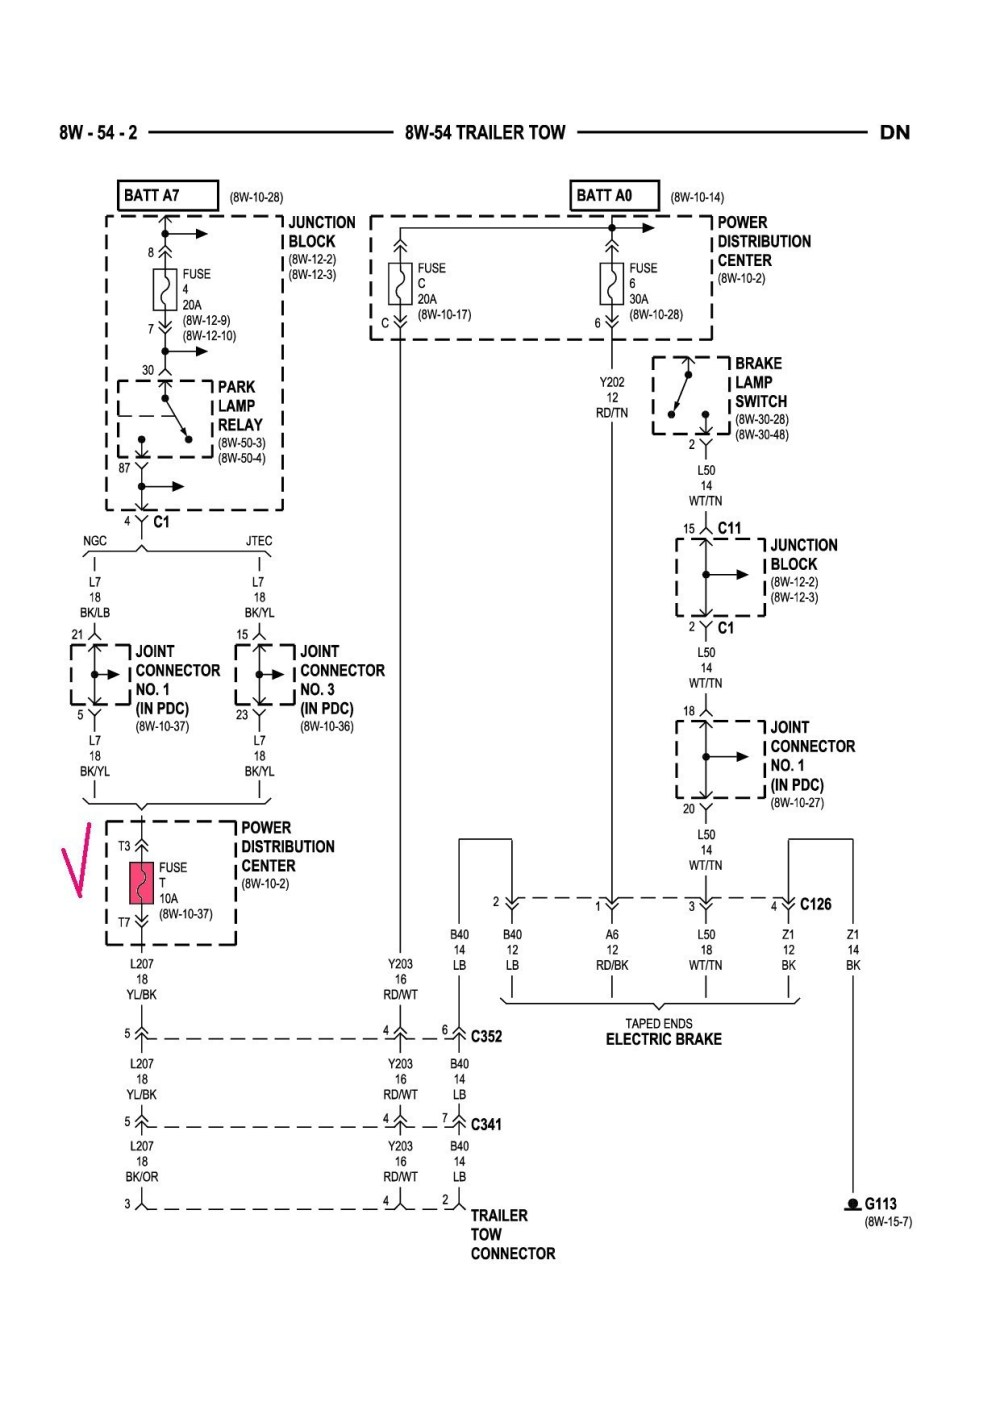 medium resolution of 01 dodge dakota tail light wiring diagram wiring diagram completed 01 dodge dakota tail light wiring